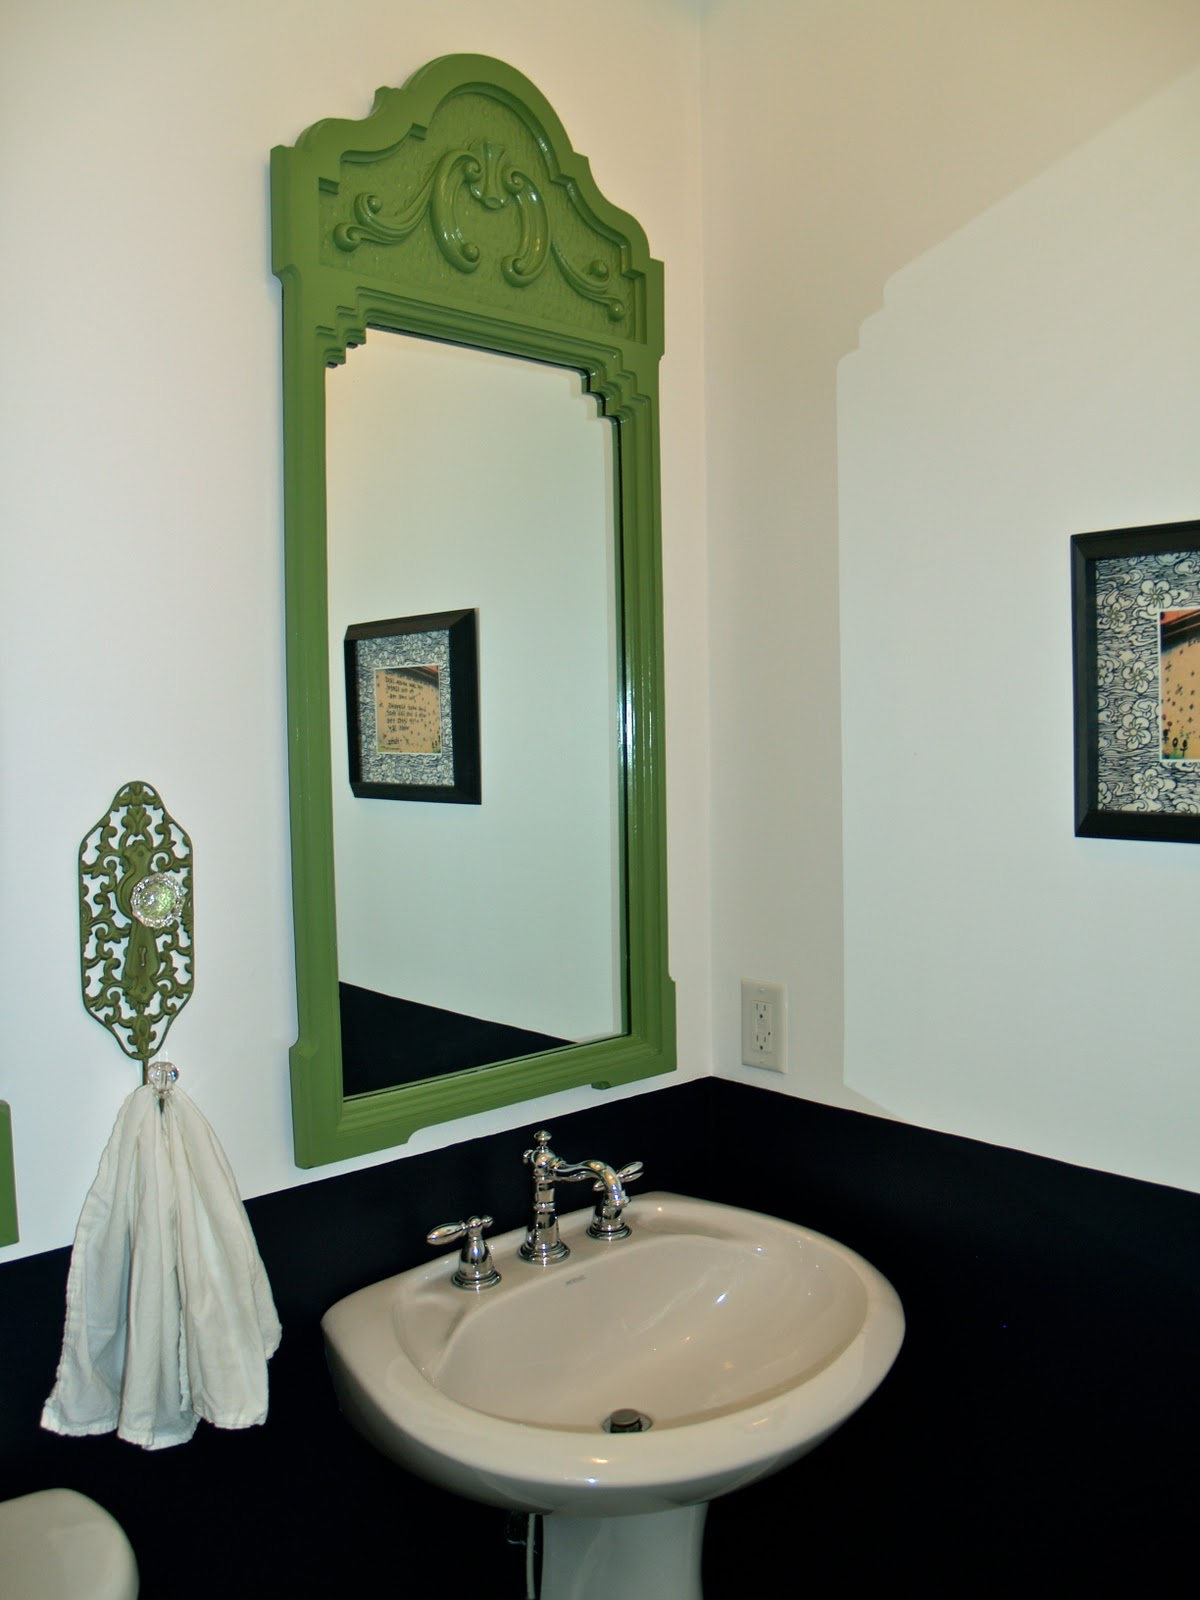 10 Rooms: How I Reno\'d the Powder Room - Without Renovating!!